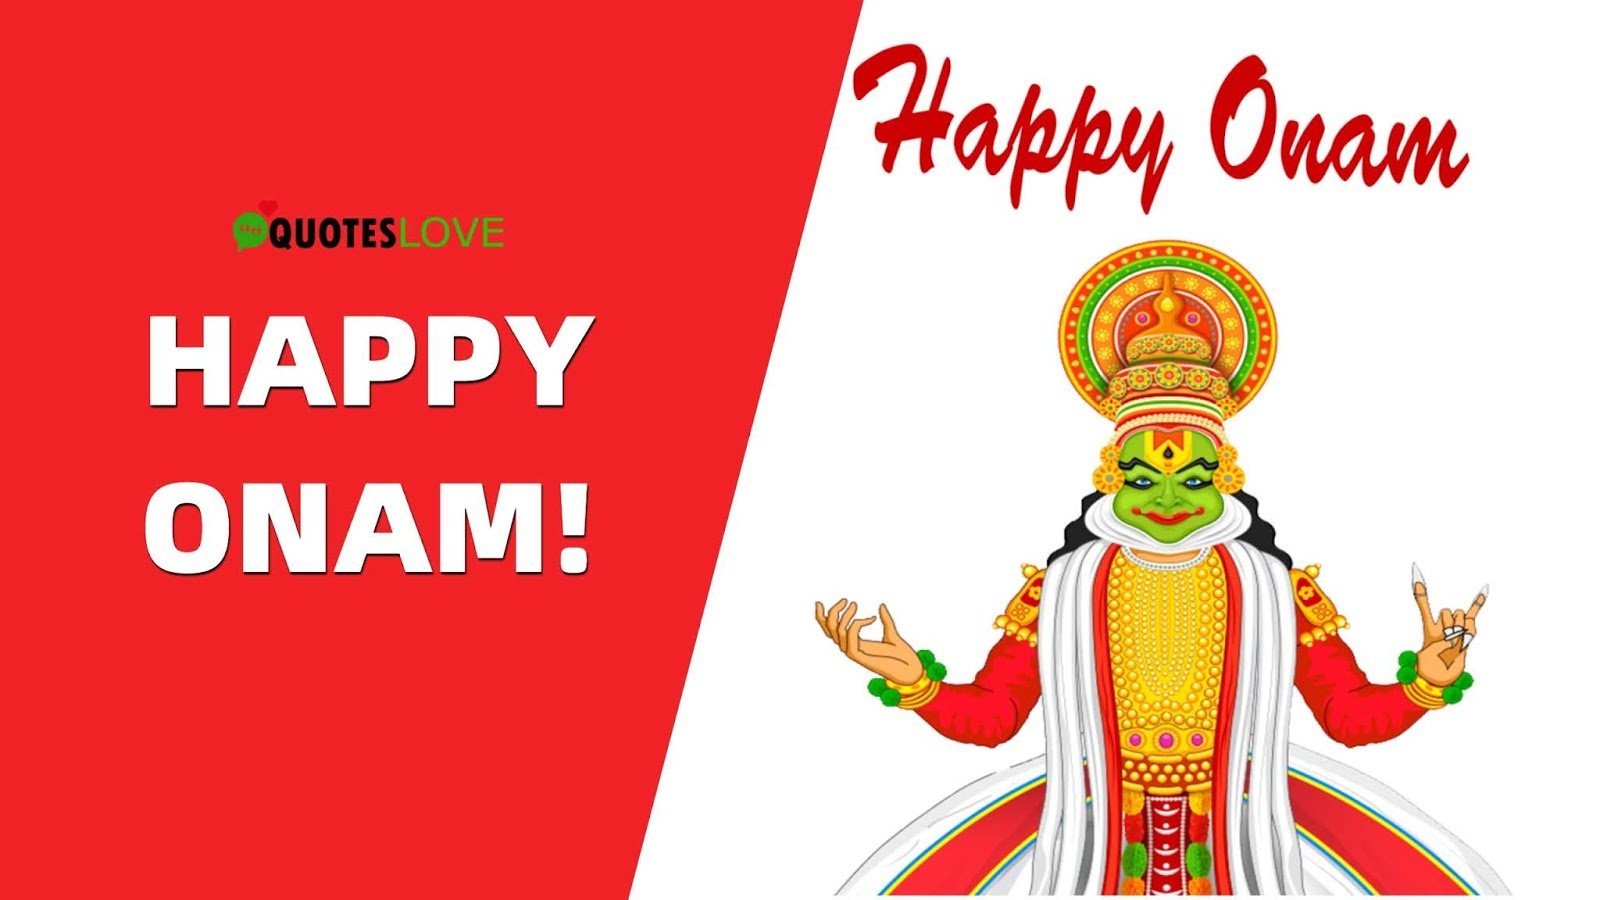 Latest Onam Images To Wish A Happy Onam 2019